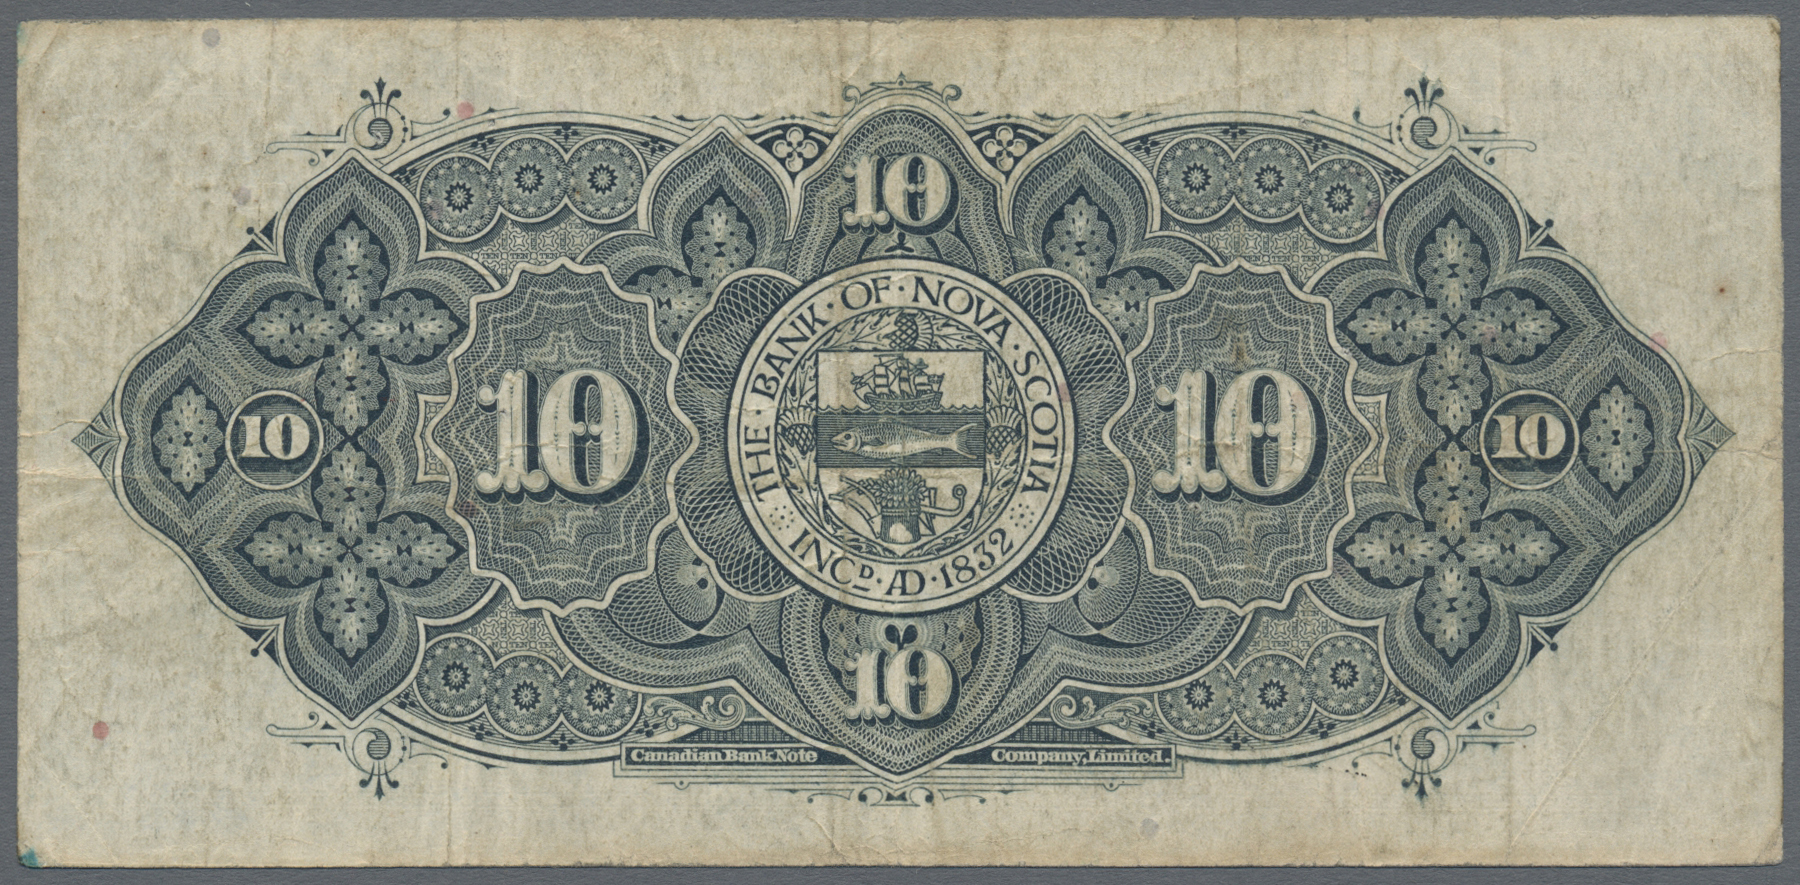 Lot 00102 - Canada | Banknoten  -  Auktionshaus Christoph Gärtner GmbH & Co. KG Sale #48 The Banknotes